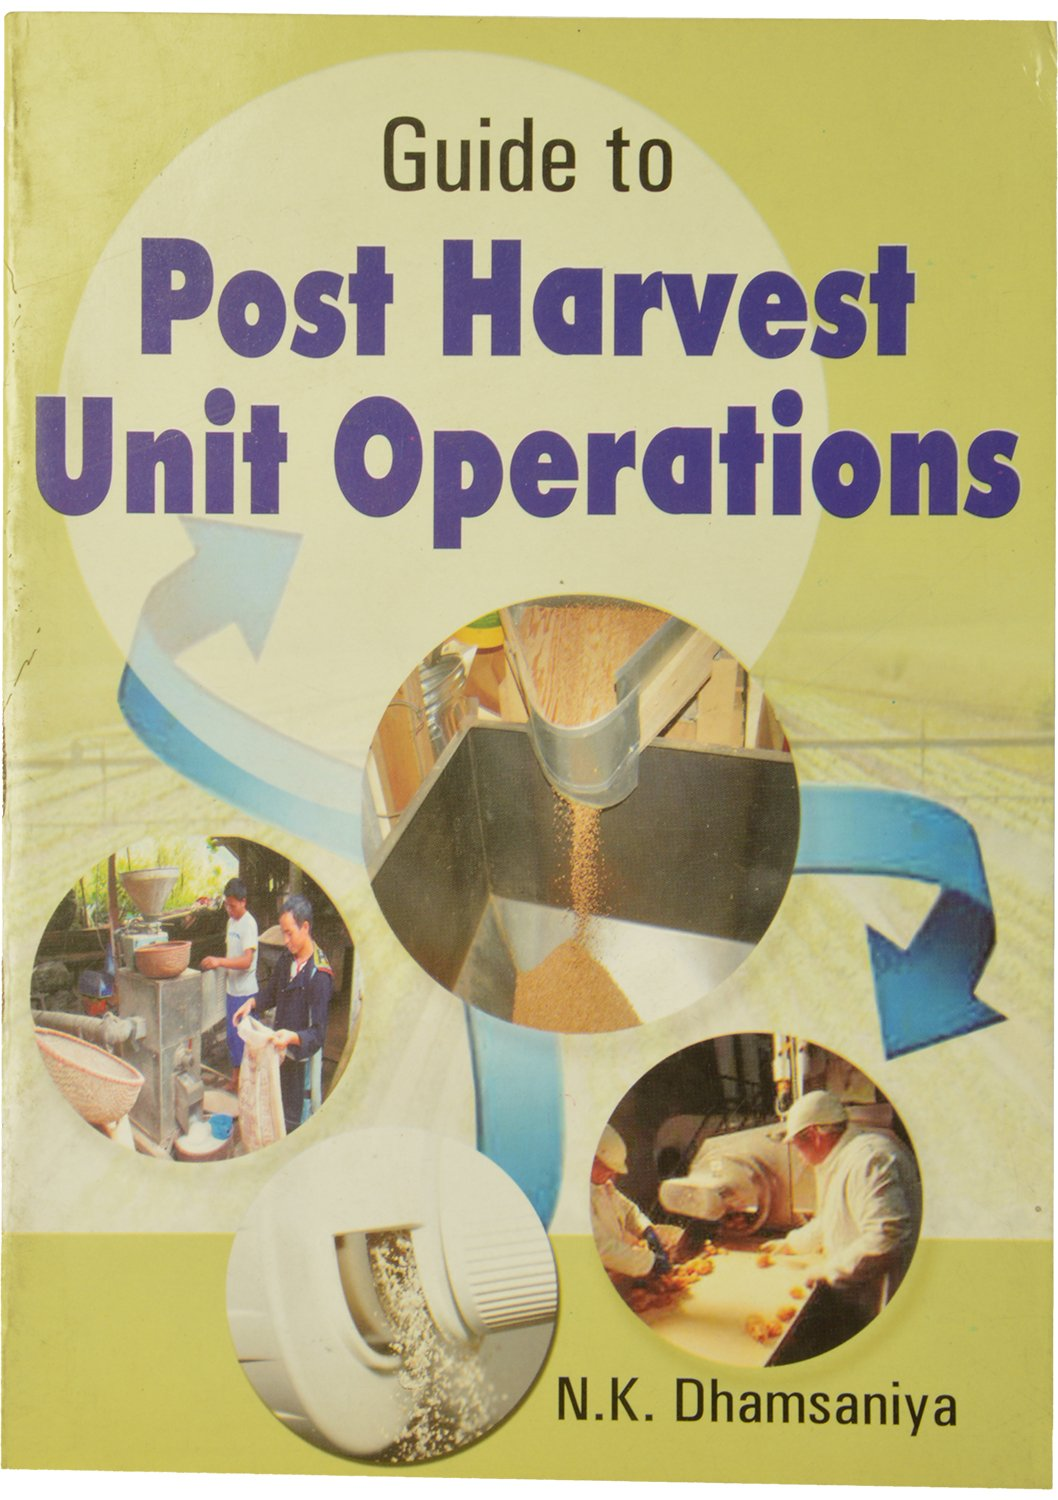 Guide to Post Harvest Unit Operations